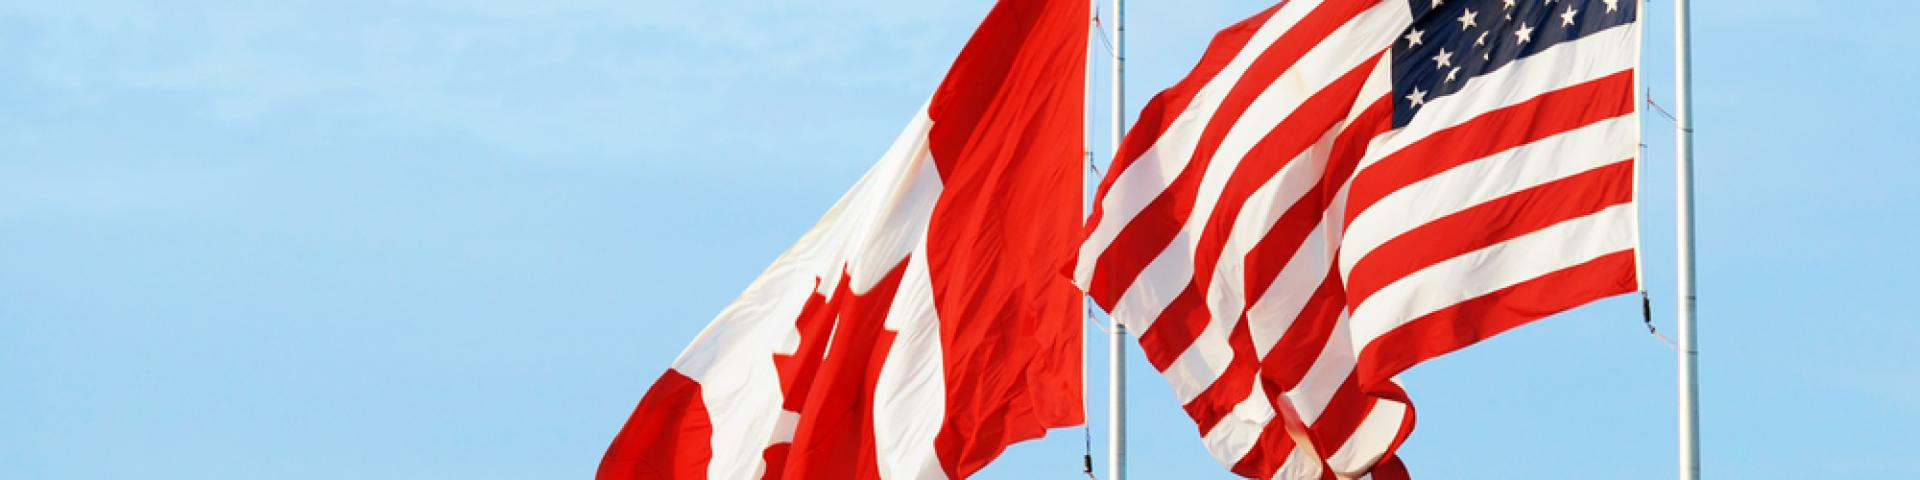 Canadian and U.S. Flags